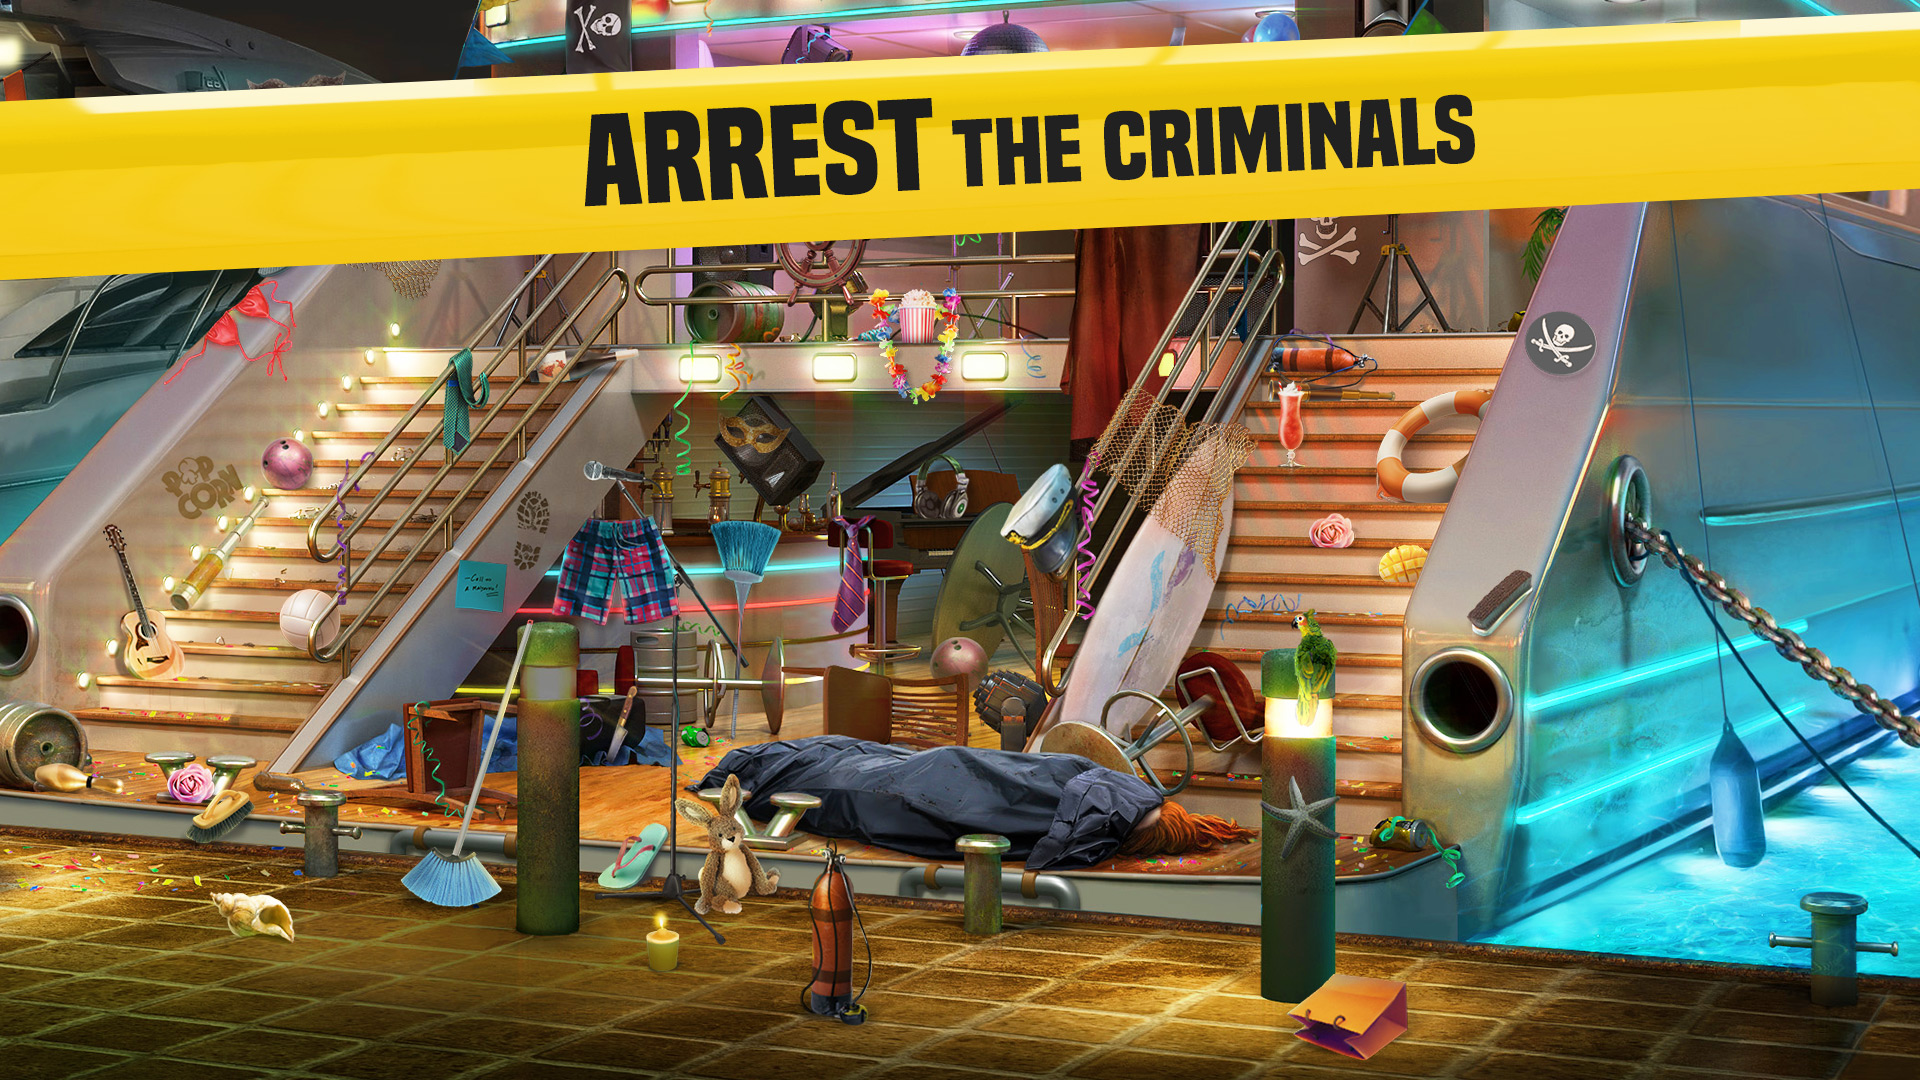 Homicide Squad: Hidden Object & Matching Puzzle Game